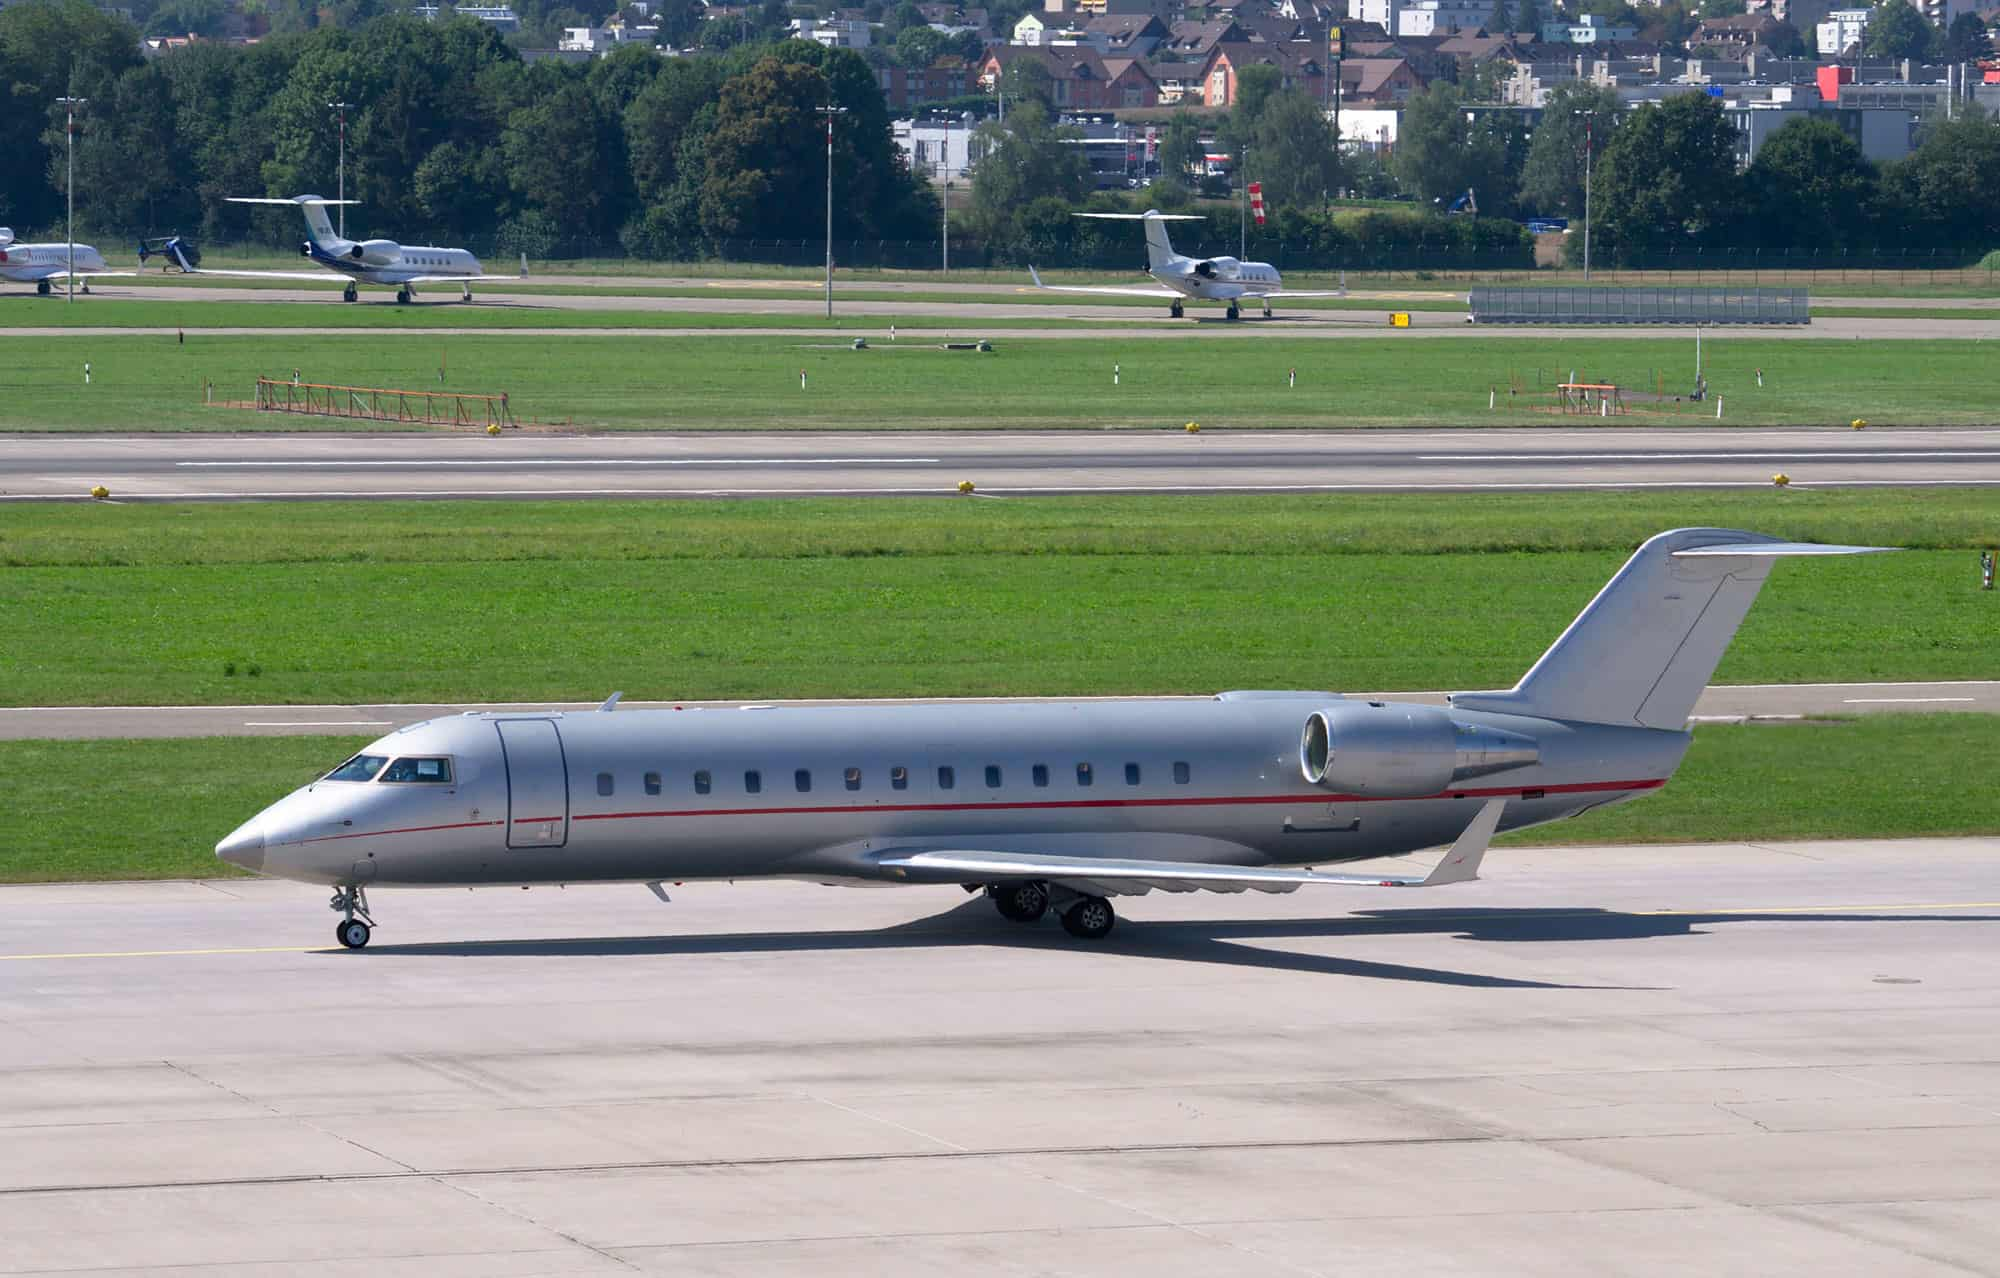 Private Jet at an Airport - Brokers can help you choose airports closest to your destination